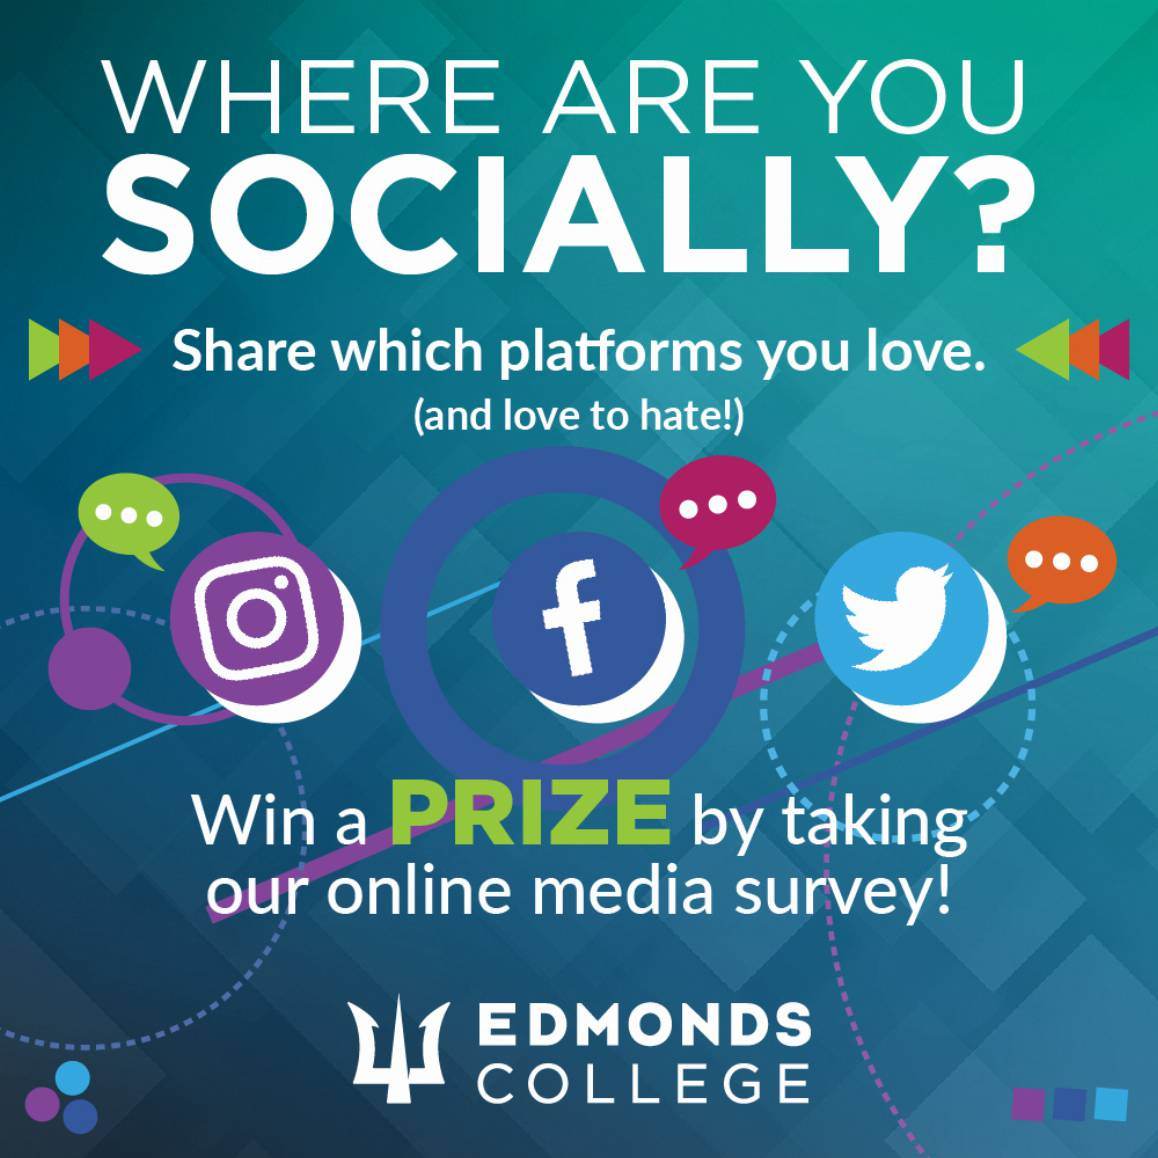 Where are you socially? Take our survey and get a chance at winning a prize.